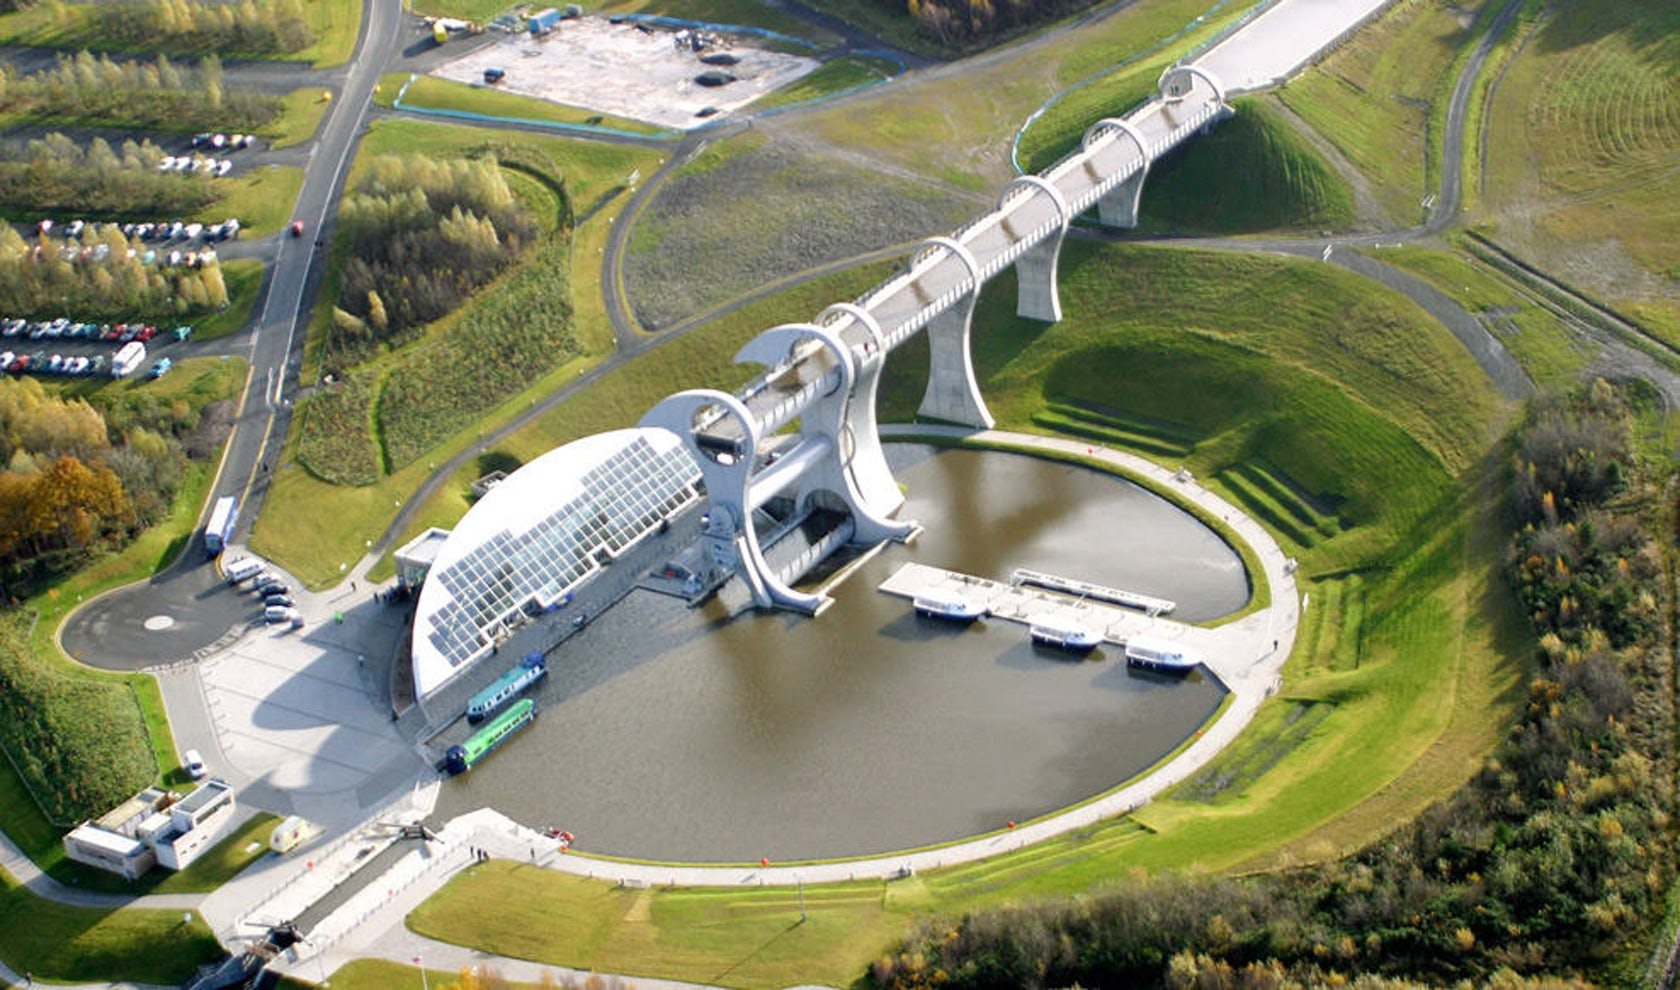 The Falkirk Wheel Amp Visitor Centre Architect Magazine